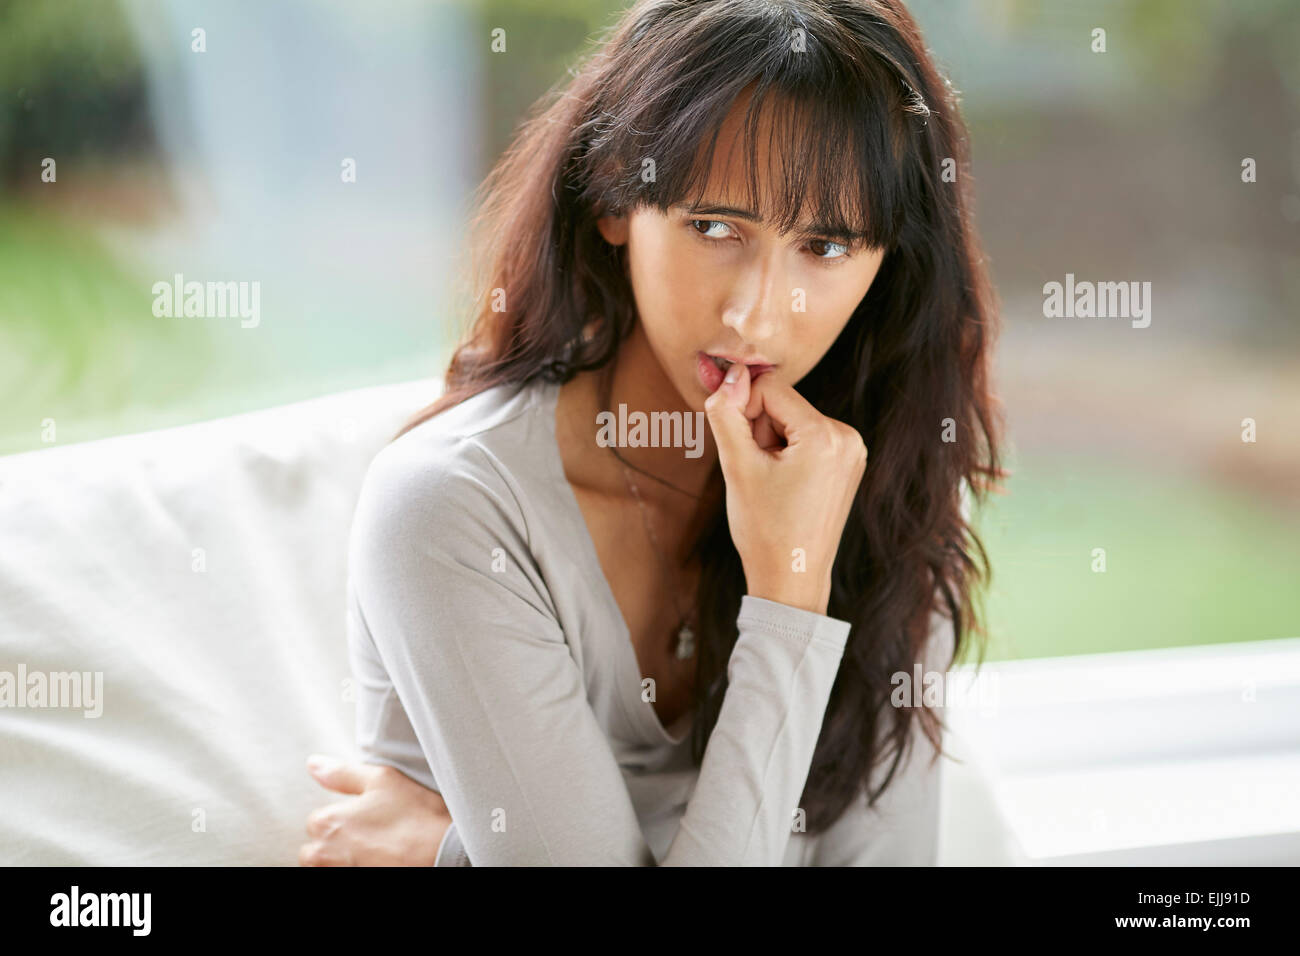 Adolescent anxieux Photo Stock